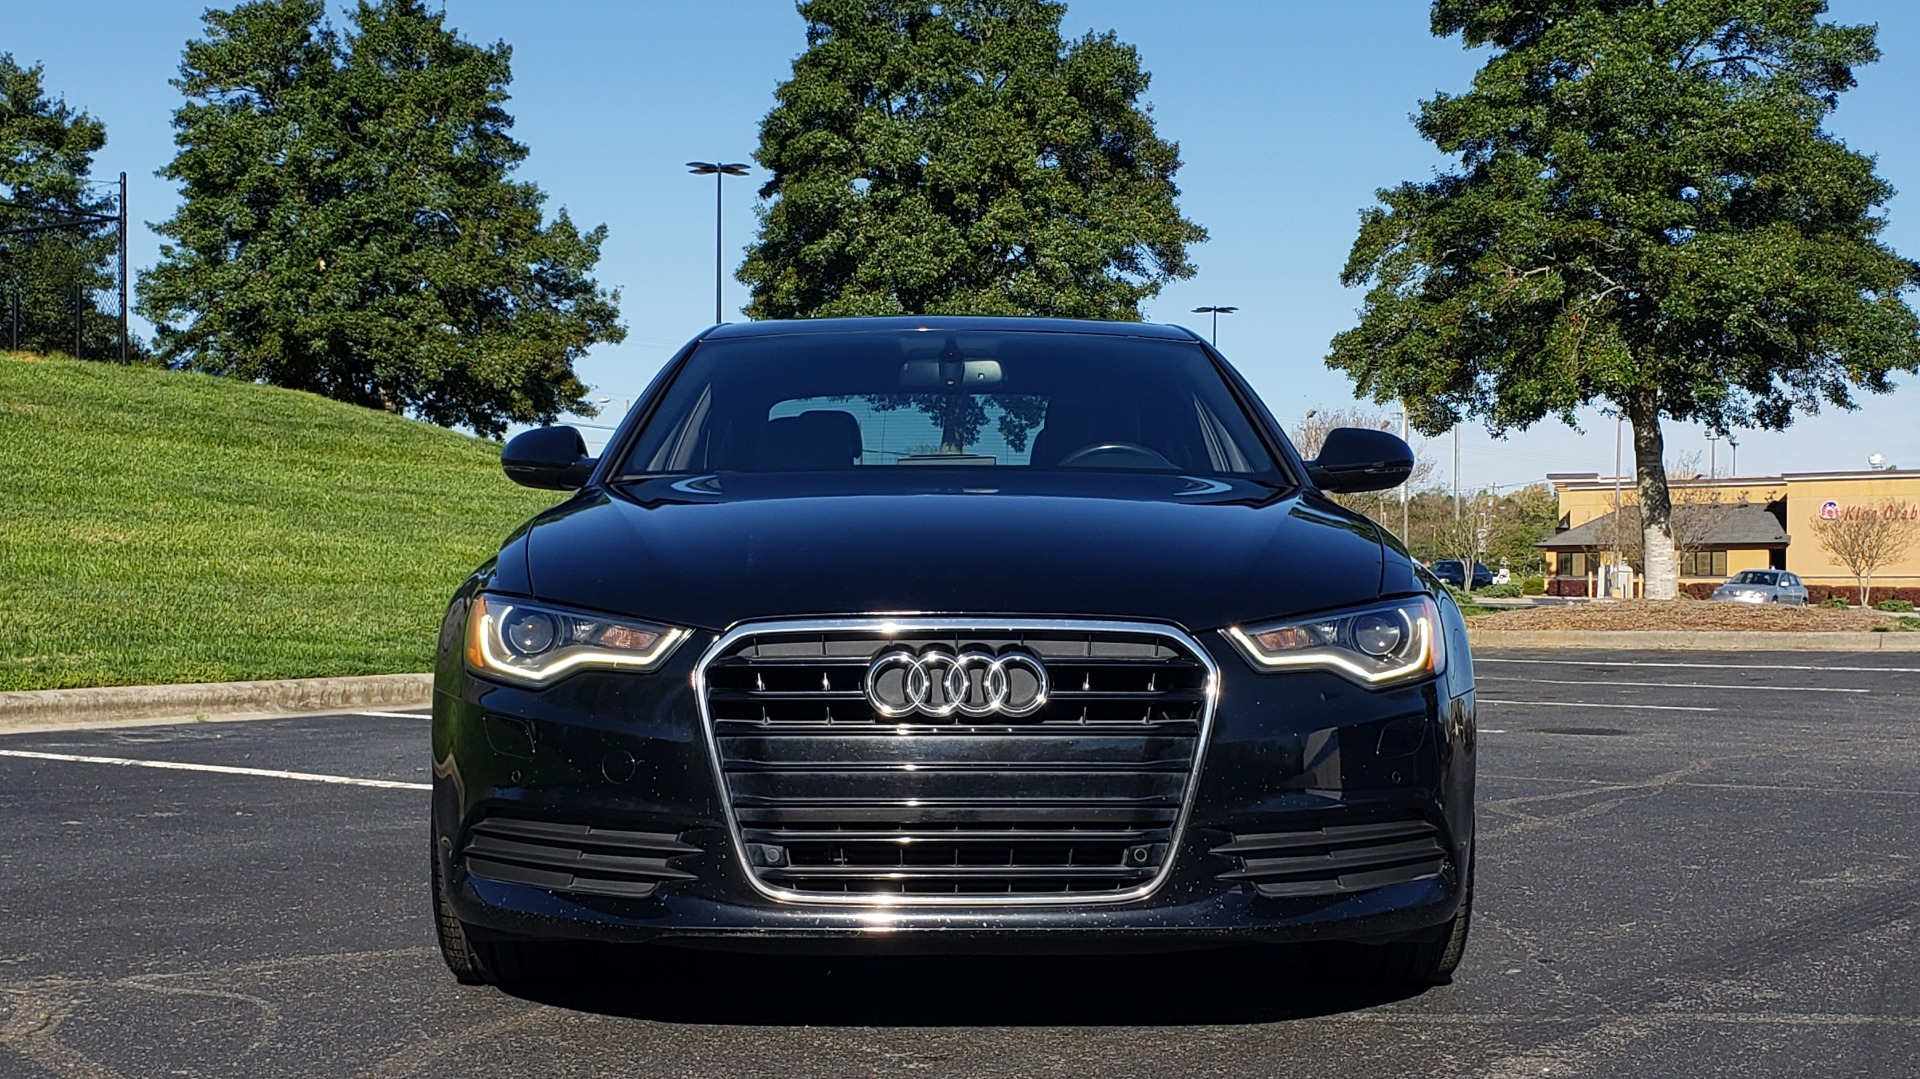 Used 2012 Audi A6 2.0T PREMIUM PLUS / NAV / SNRF / CVT TRANS / REARVIEW for sale Sold at Formula Imports in Charlotte NC 28227 24